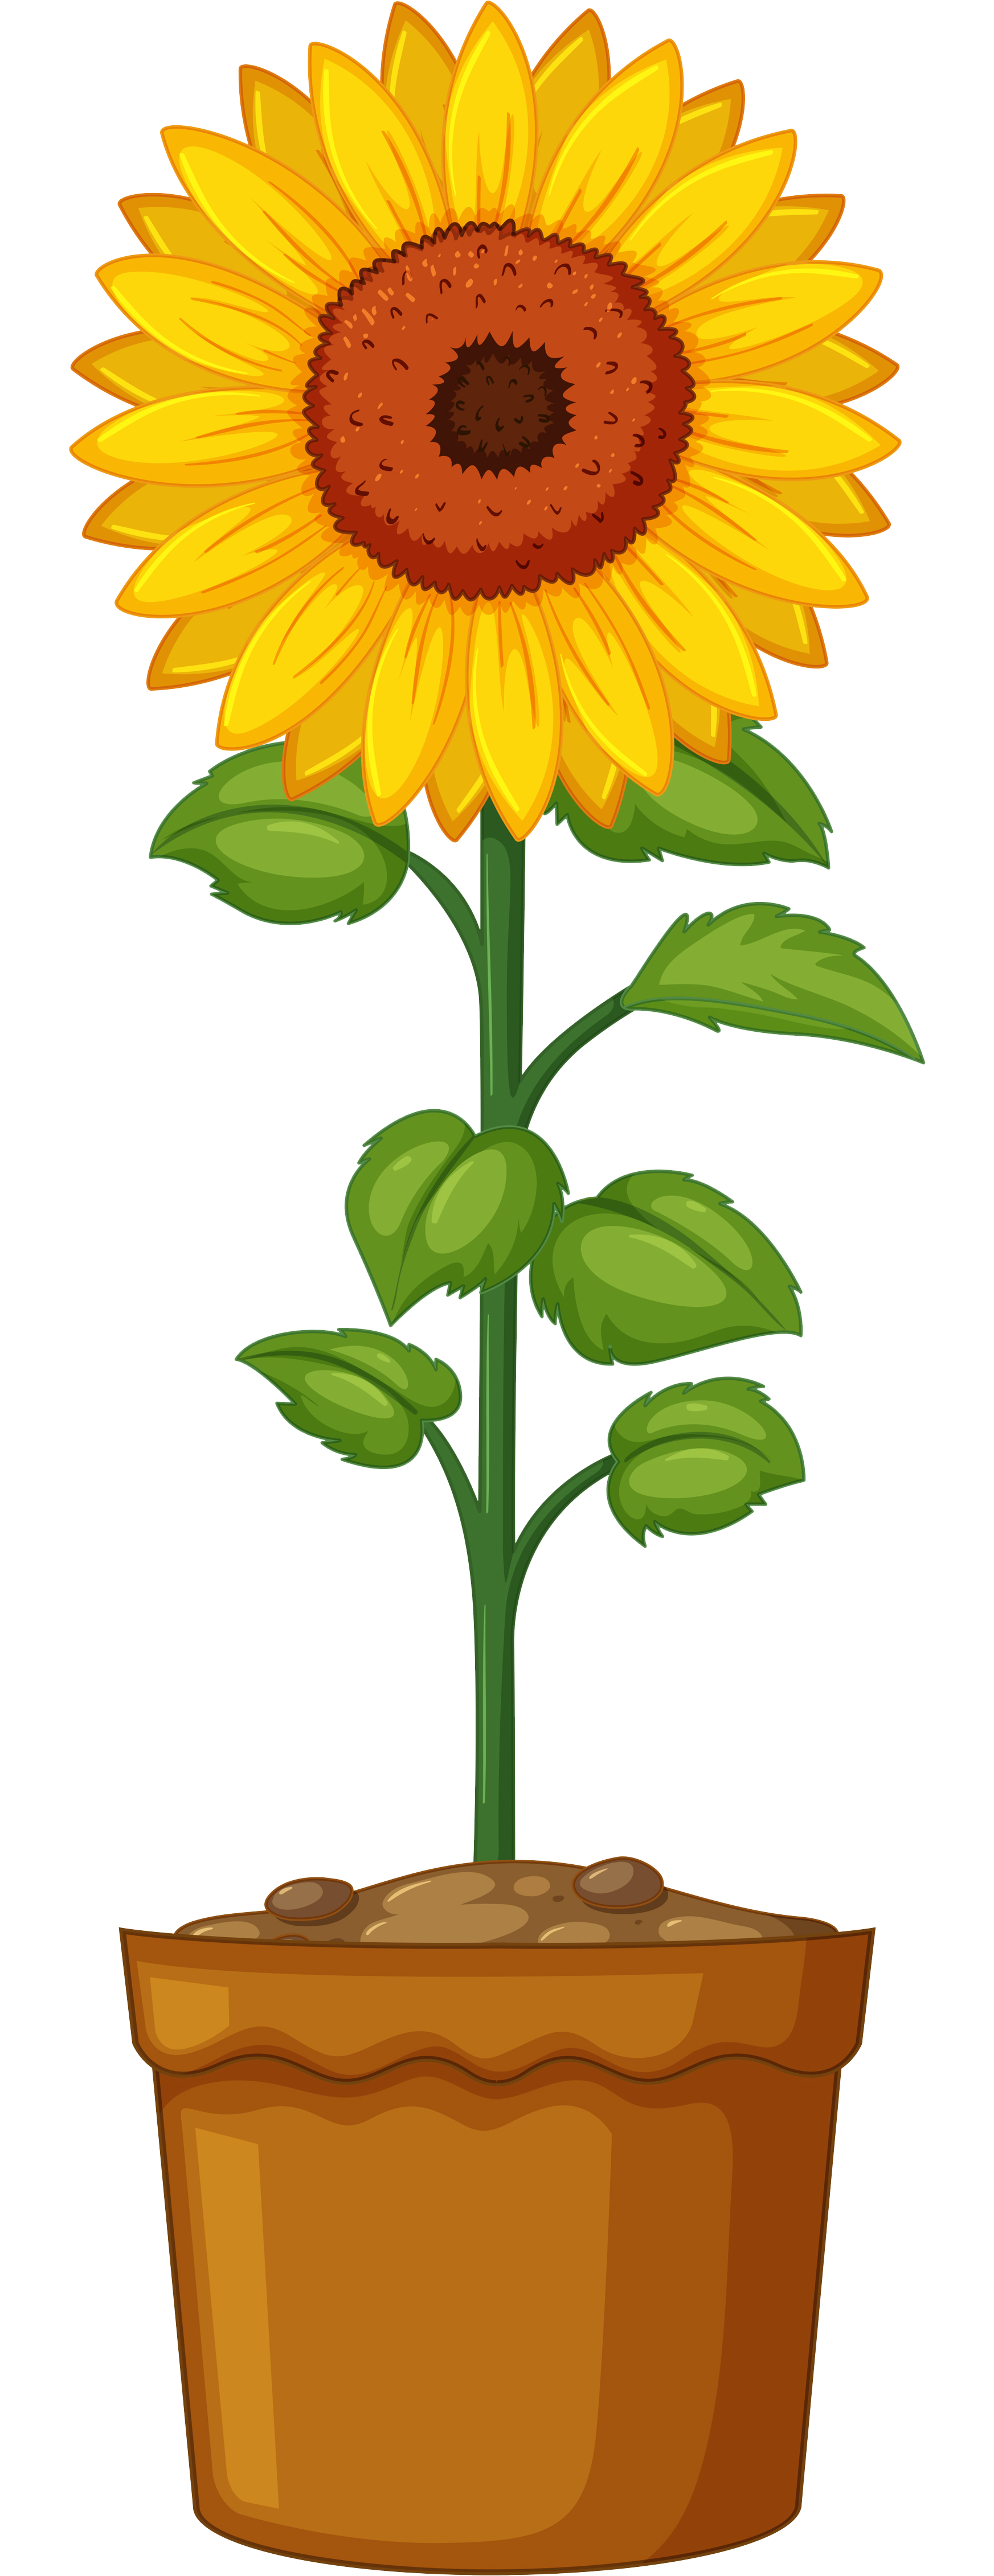 Planting flower clipart graphic free library Britton Sunflower Planting | Lenawee District Library graphic free library